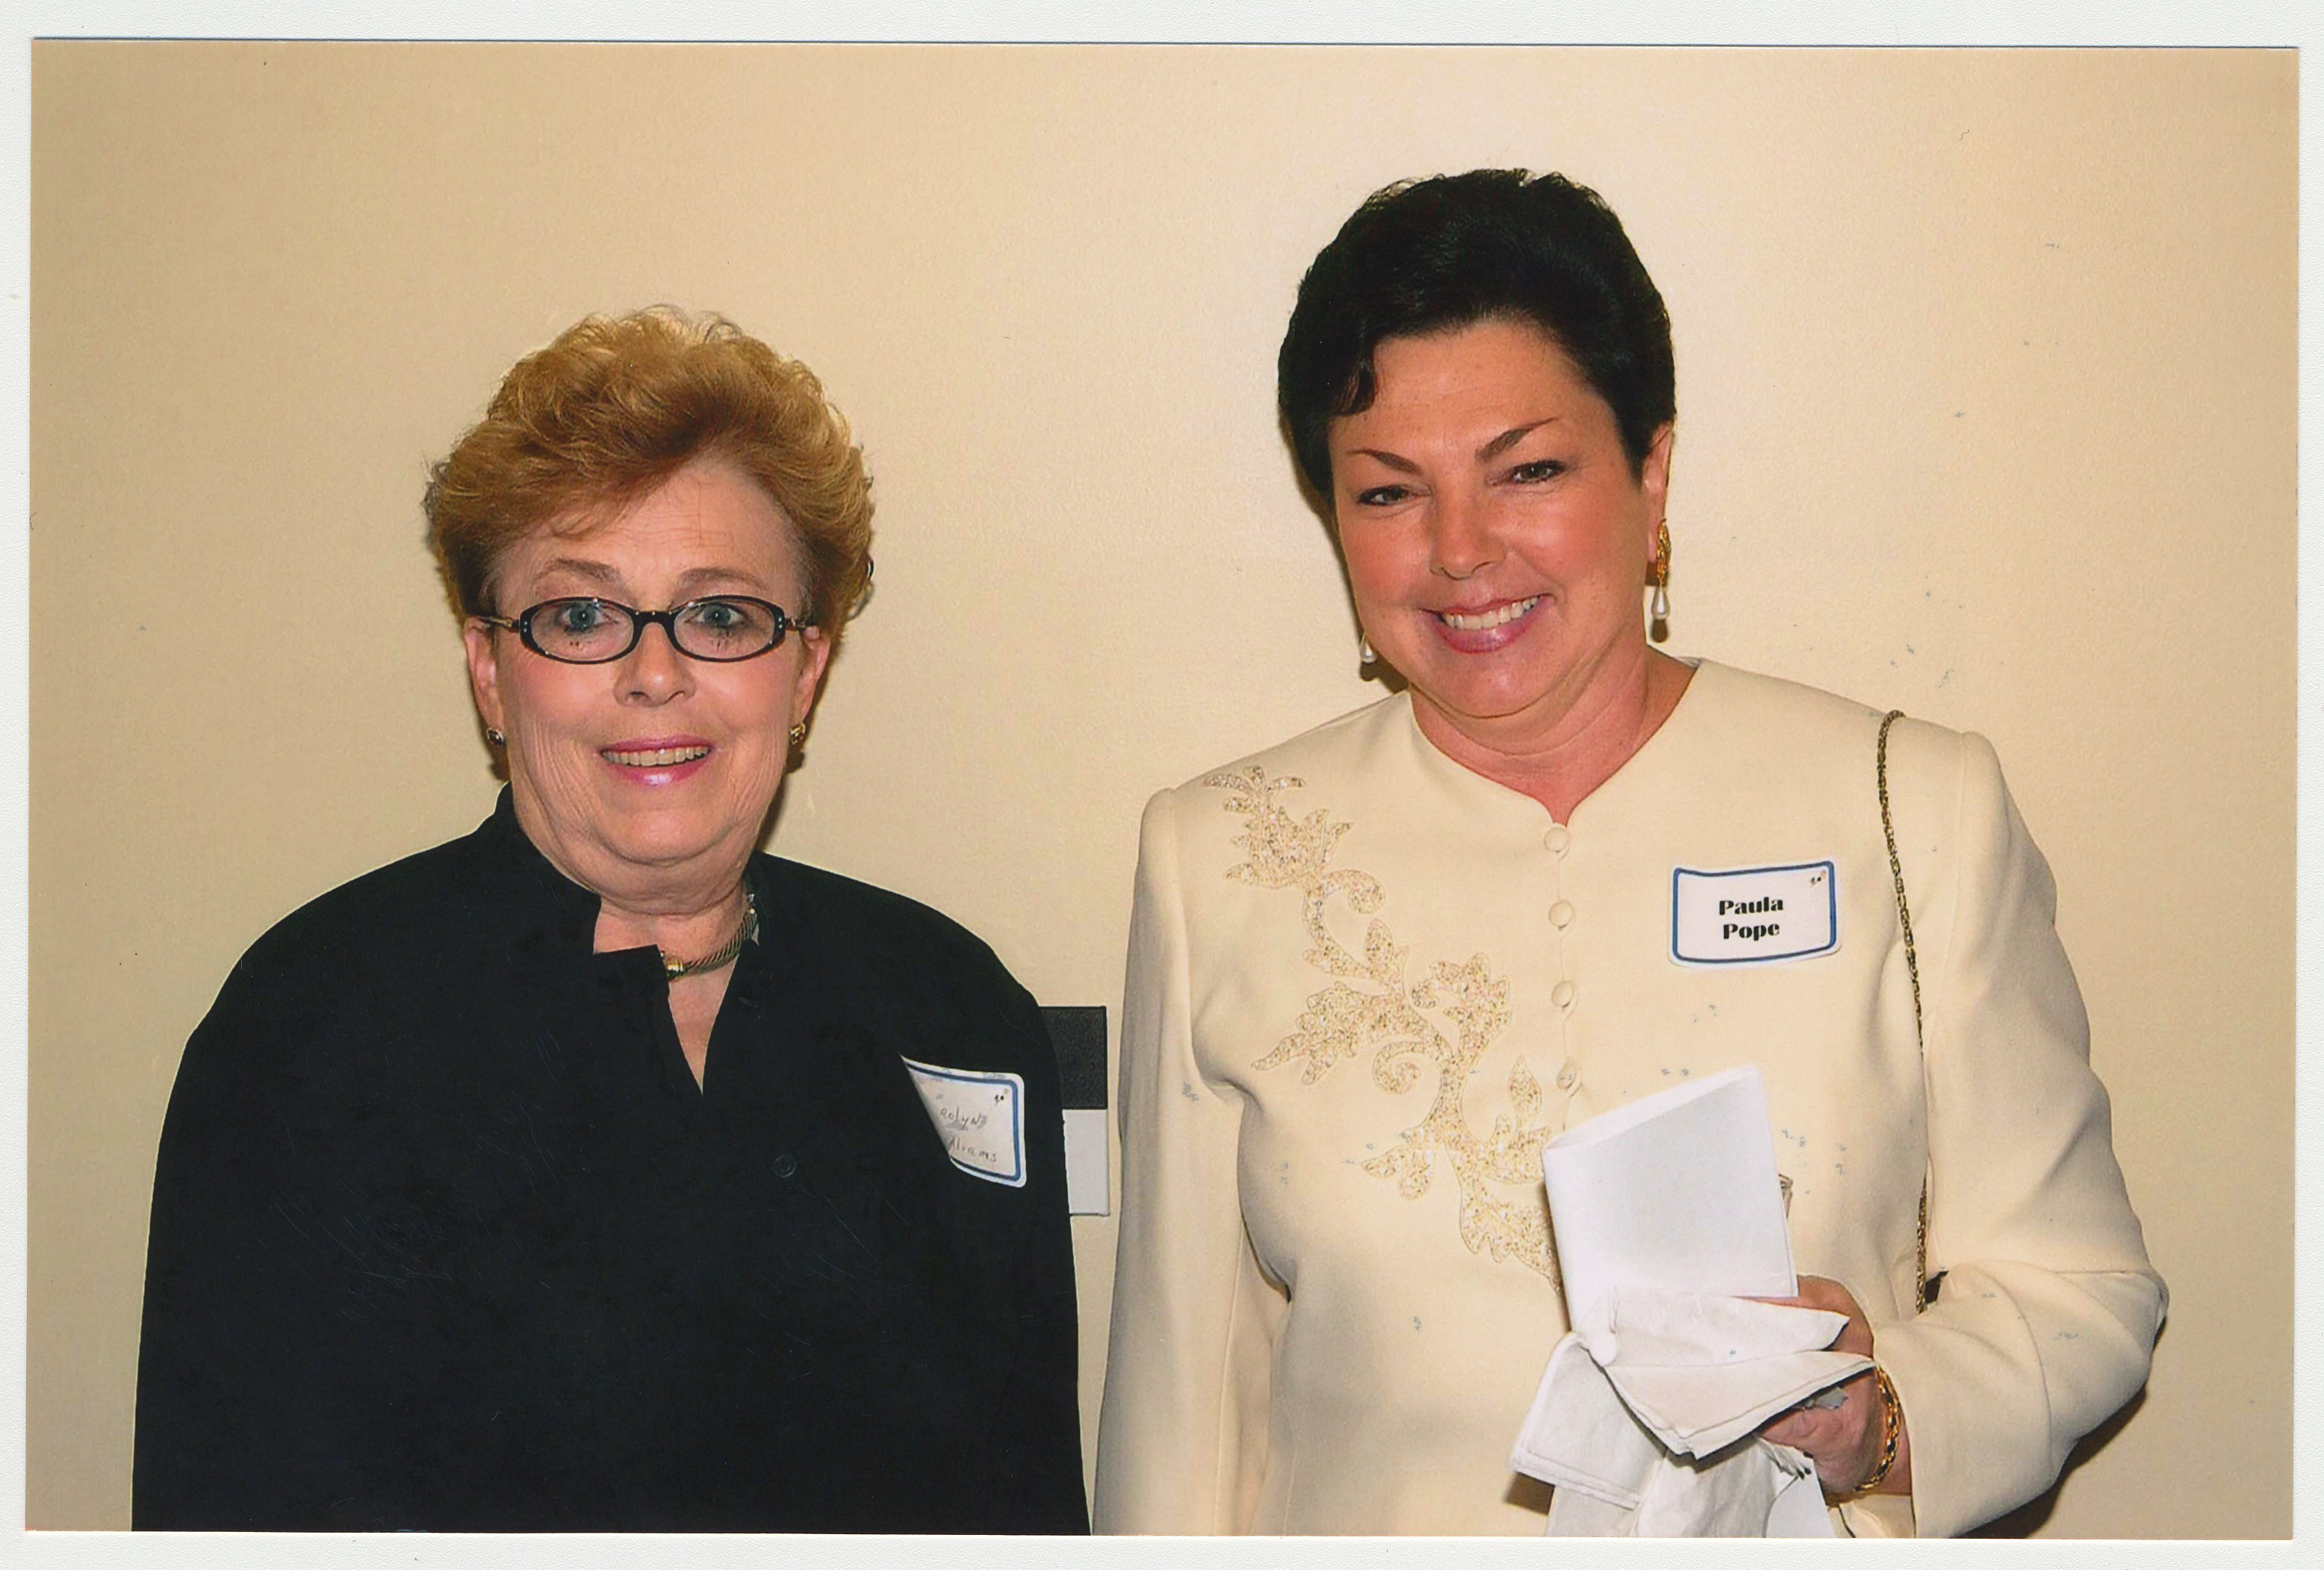 Carolyn Williams Dean Of Nursing And Paula Pope Central Development Are At A Ceremony For